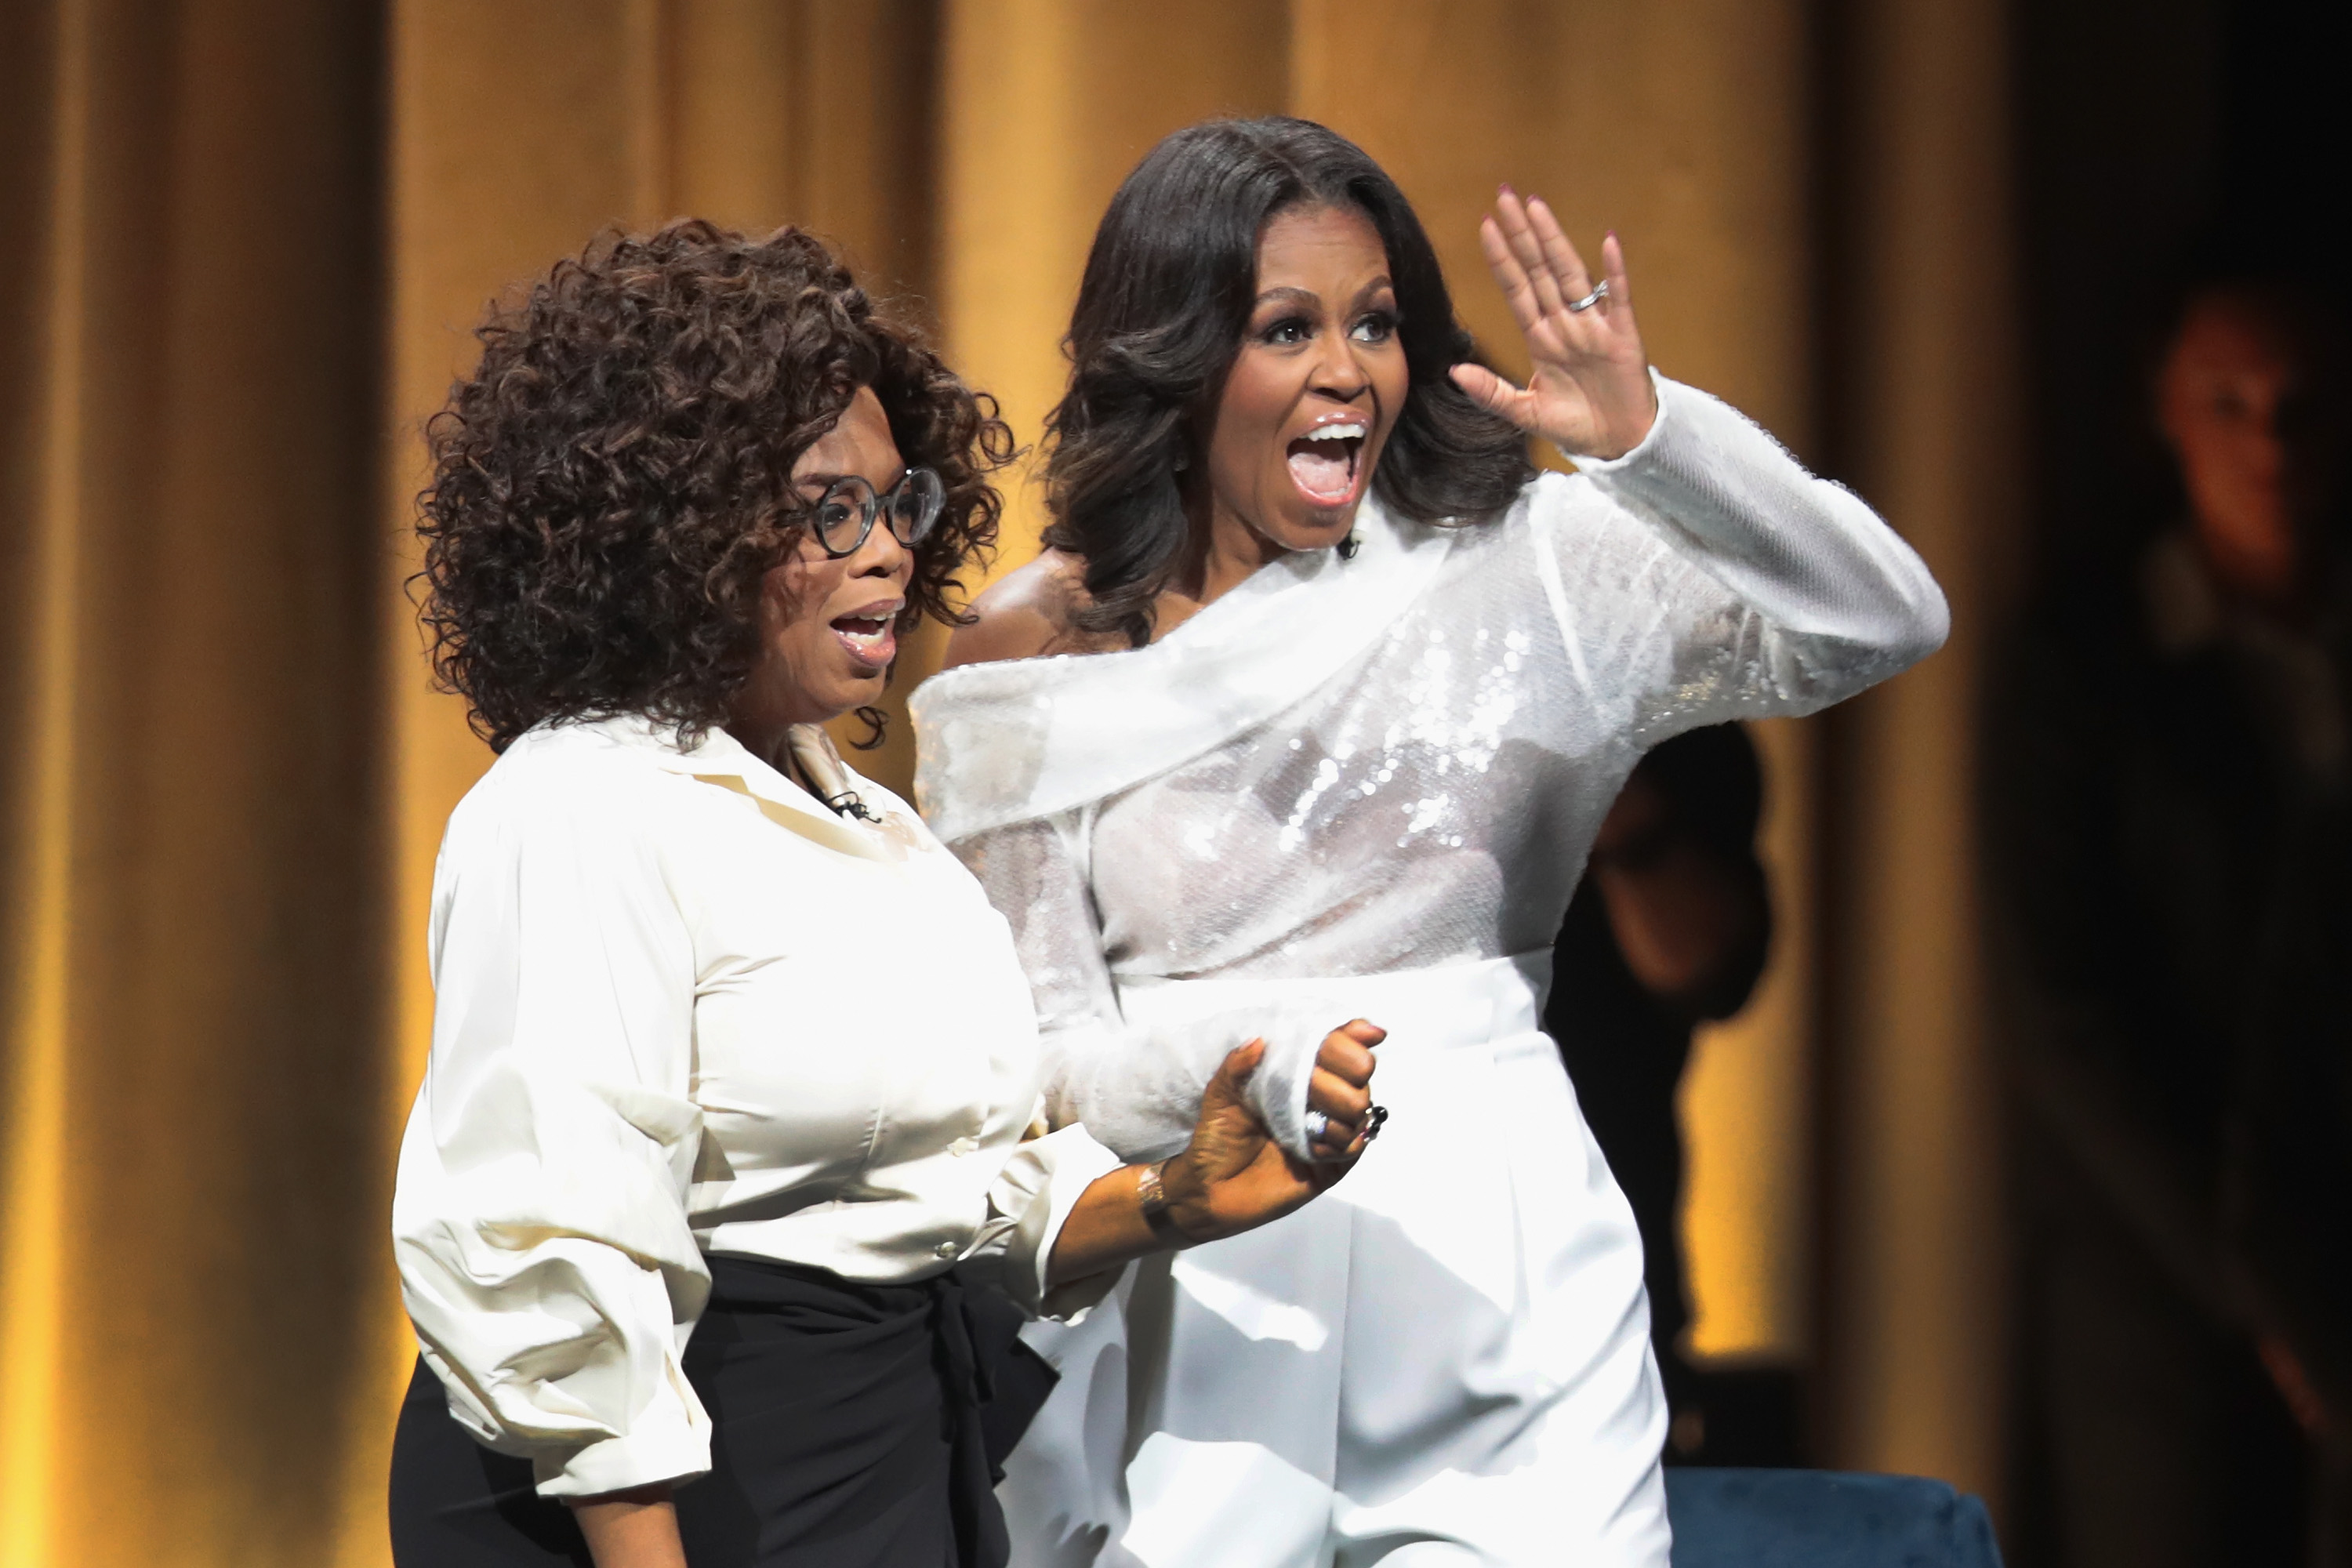 Oprah Winfrey introduces former first lady Michelle Obama as she kicks off her 'Becoming' arena book tour on November 13, 2018 in Chicago, Illinois. In the book, which was released today, Obama describes her journey from Chicago's South Side to the White House.